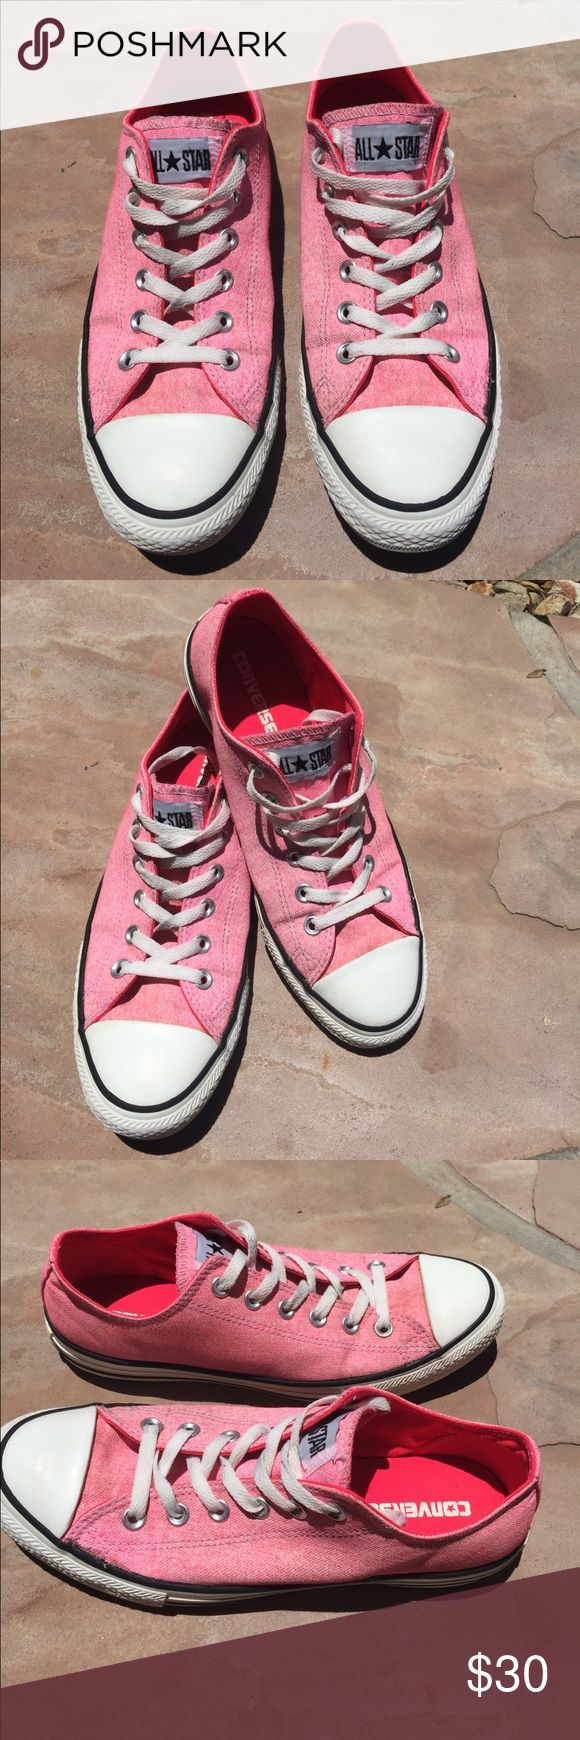 Converse Neon Pink/White Canvas Sneakers Women's Size 10/Men's Size 8. Preowned but great shape please view all 8 photos. No holes or stains and look pretty new! Converse Shoes Sneakers